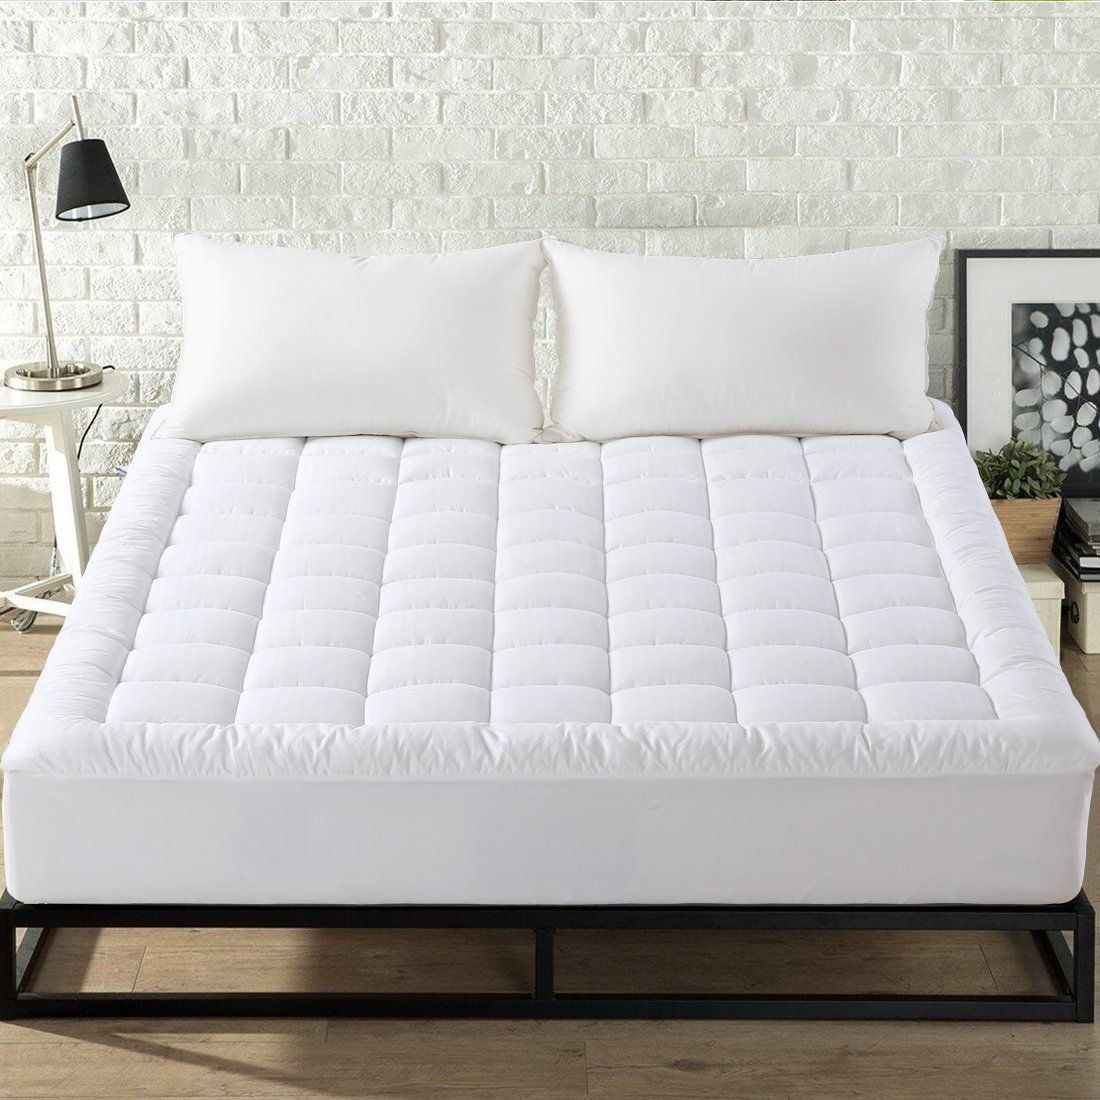 easeland luxury hotel quilted mattress pad cover 300tc 100 cotton